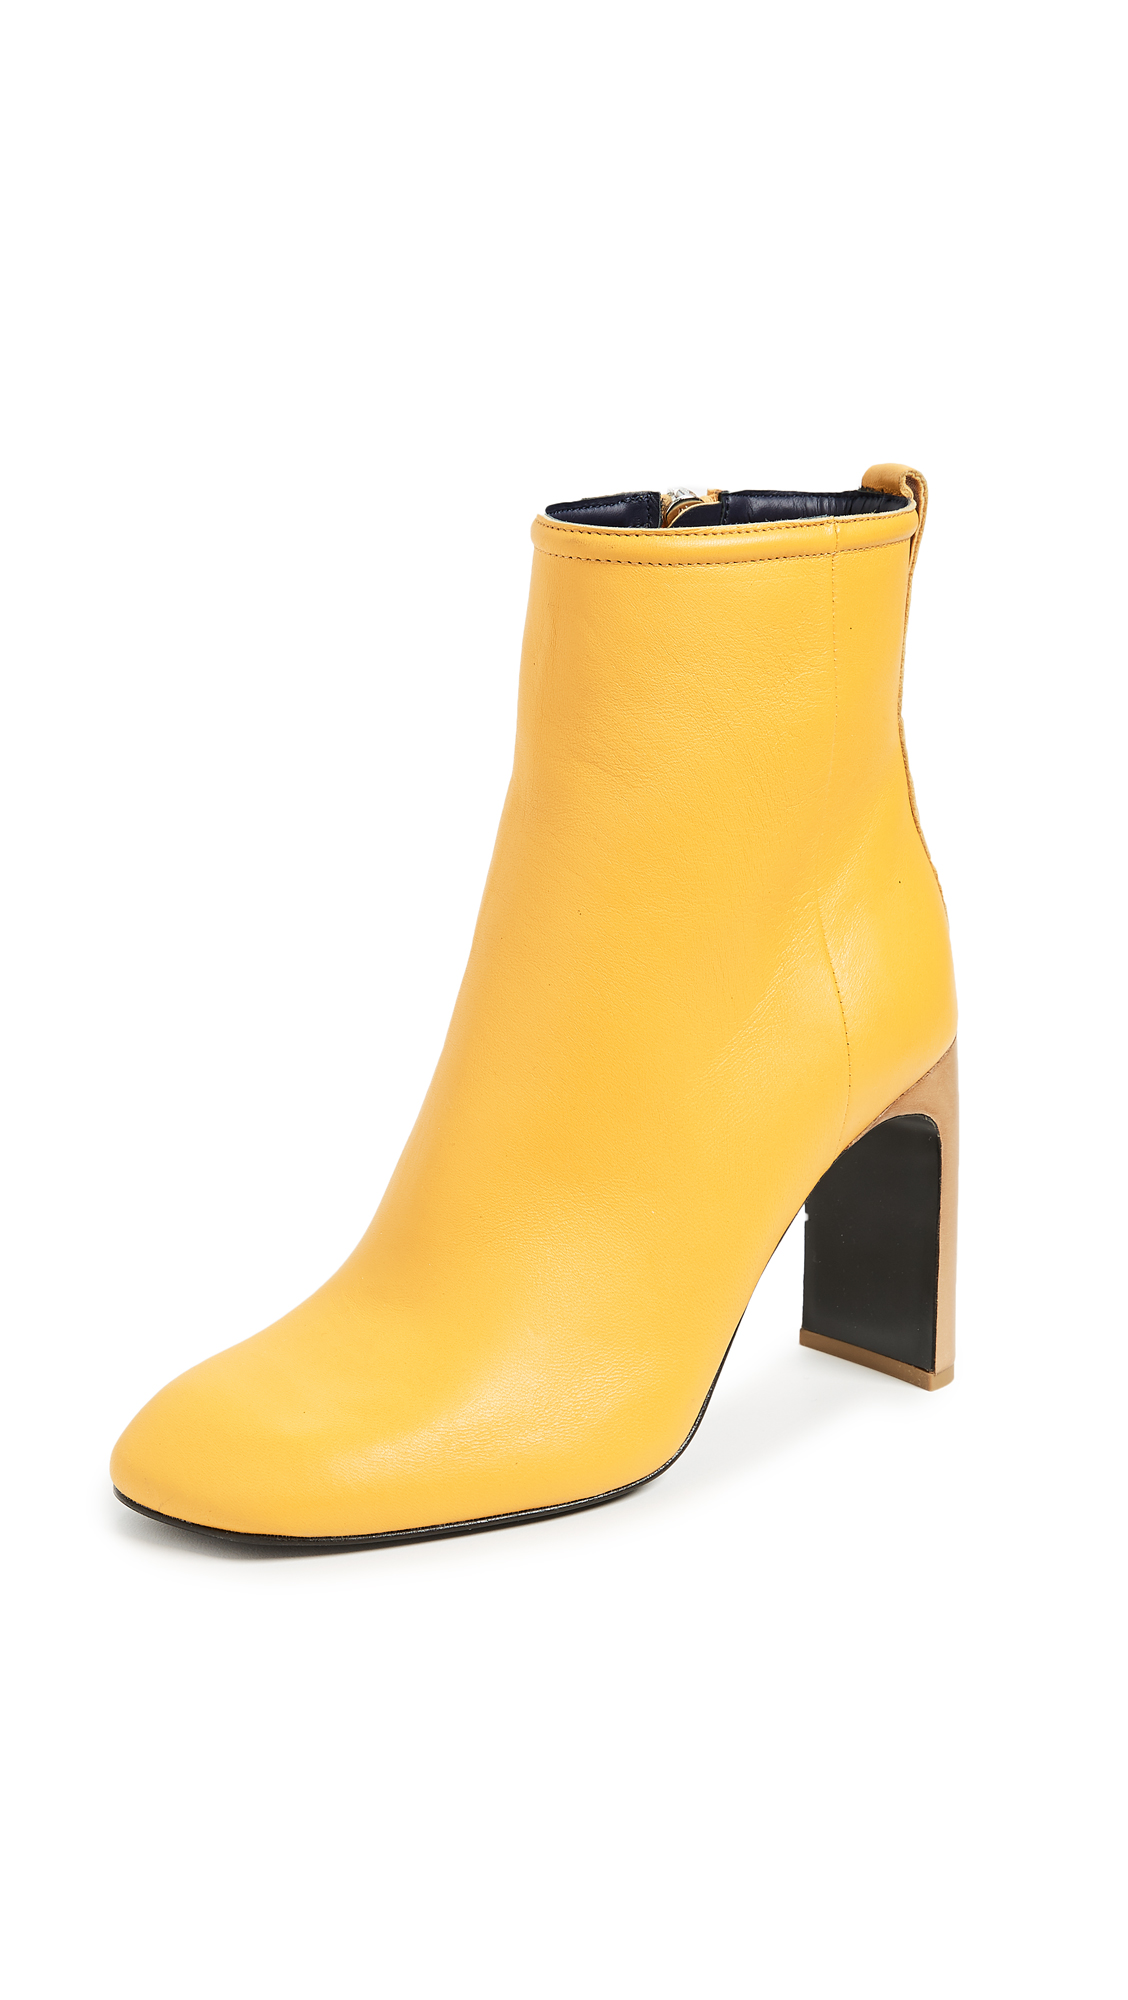 Rag & Bone Ellis Boots - Citrus